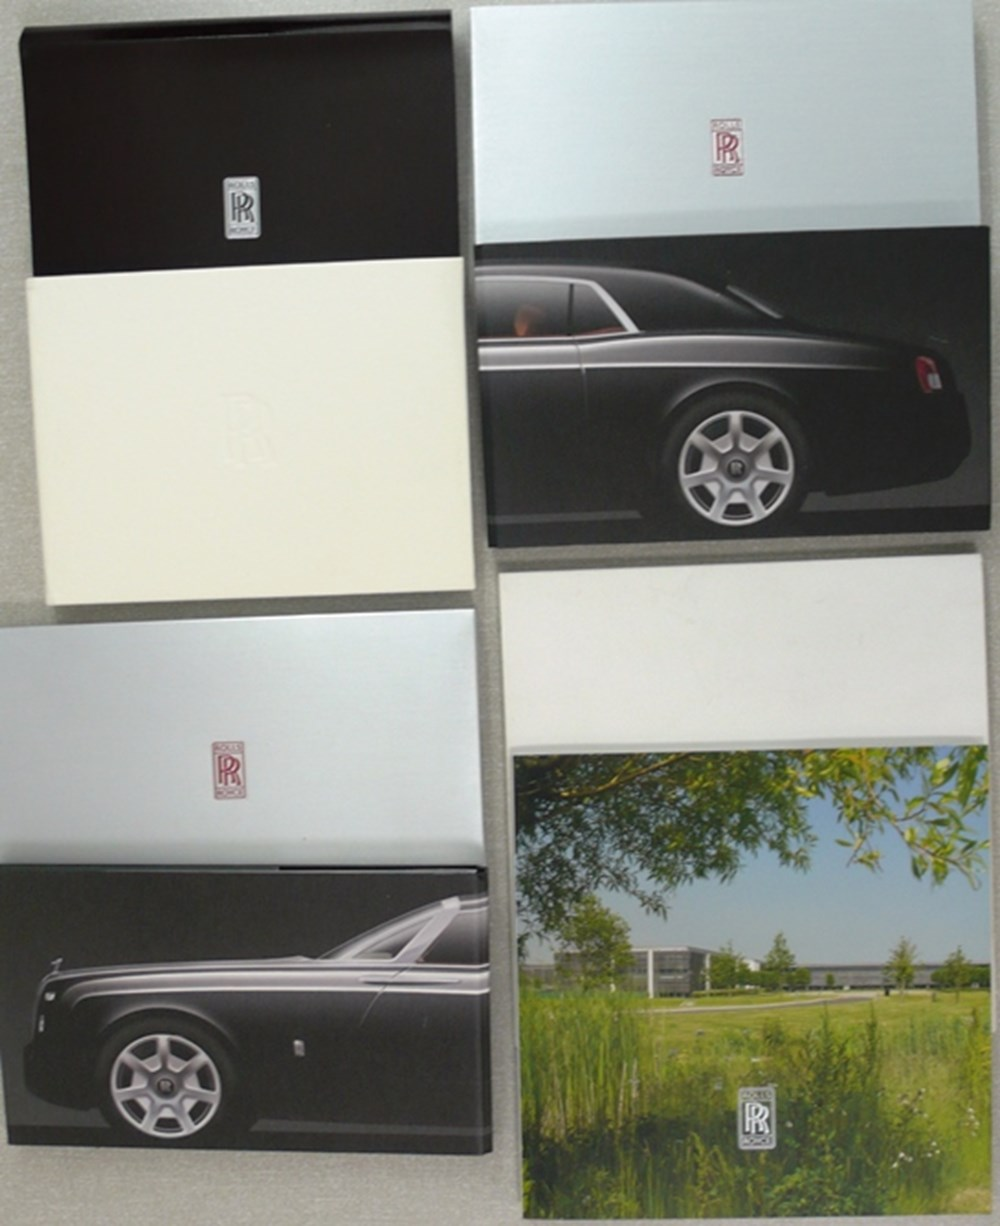 Lot 117 - Rolls-Royce brochures